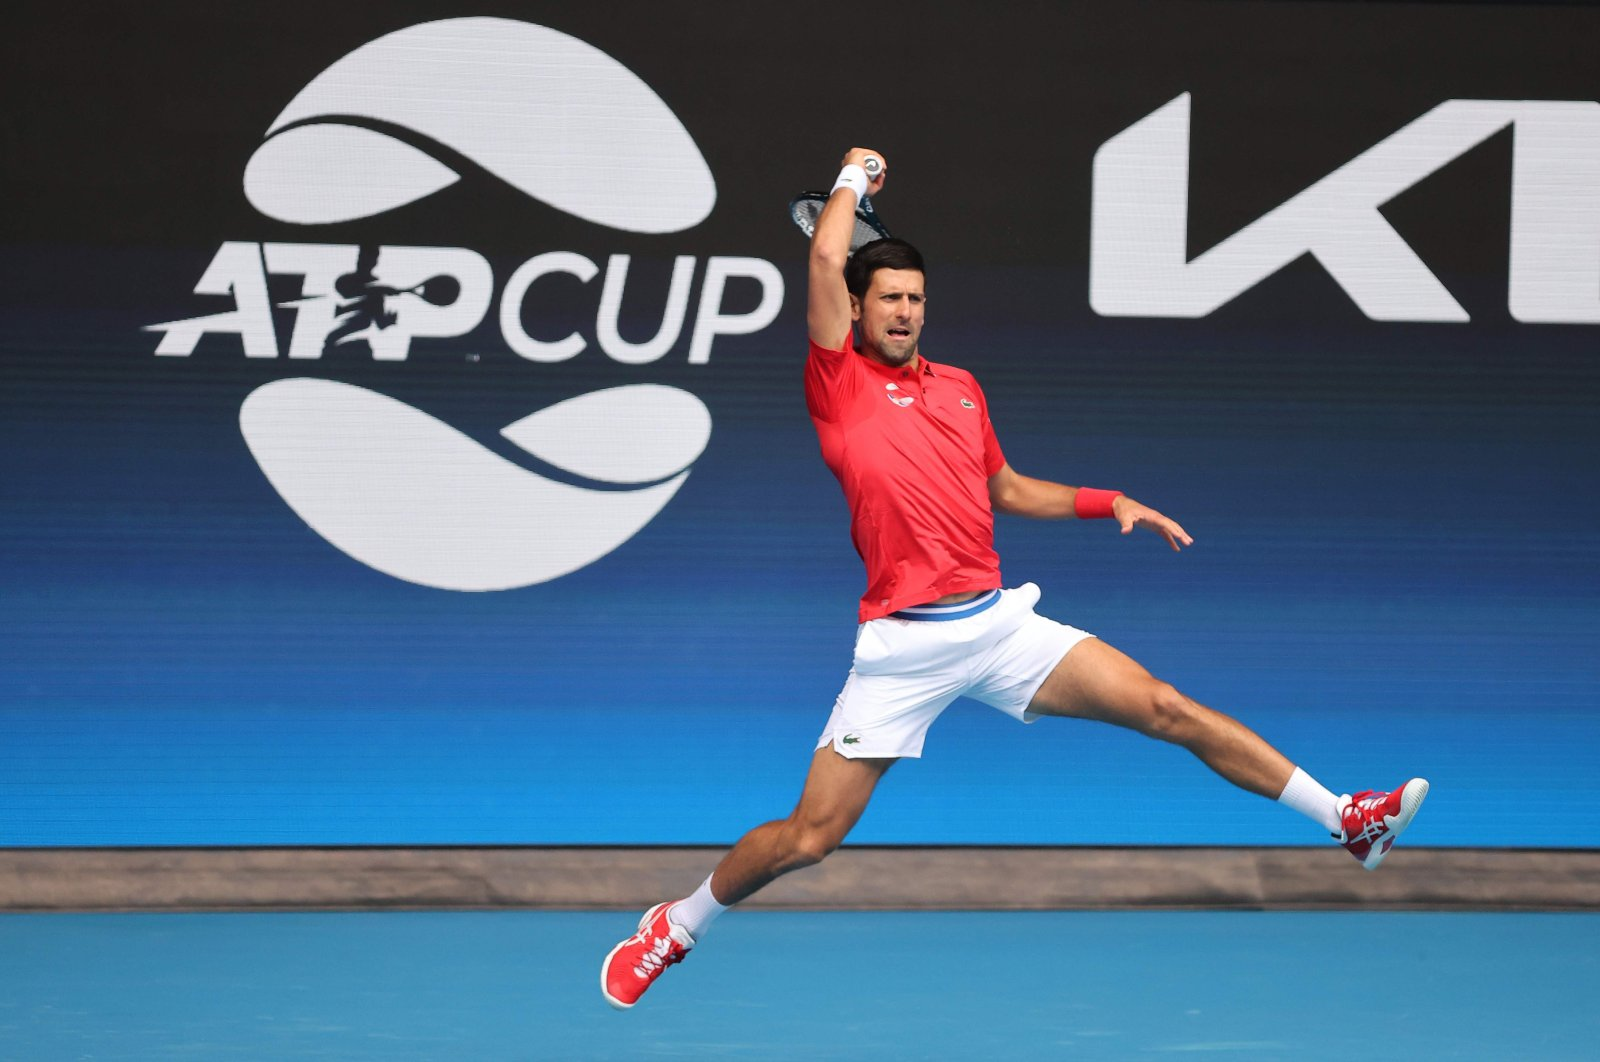 Serbia's Novak Djokovic hits a return against Canada's Denis Shapovalov during their group A men's singles match at the 2021 ATP Cup, Melbourne, Australia, Feb. 2, 2021. (AFP Photo)